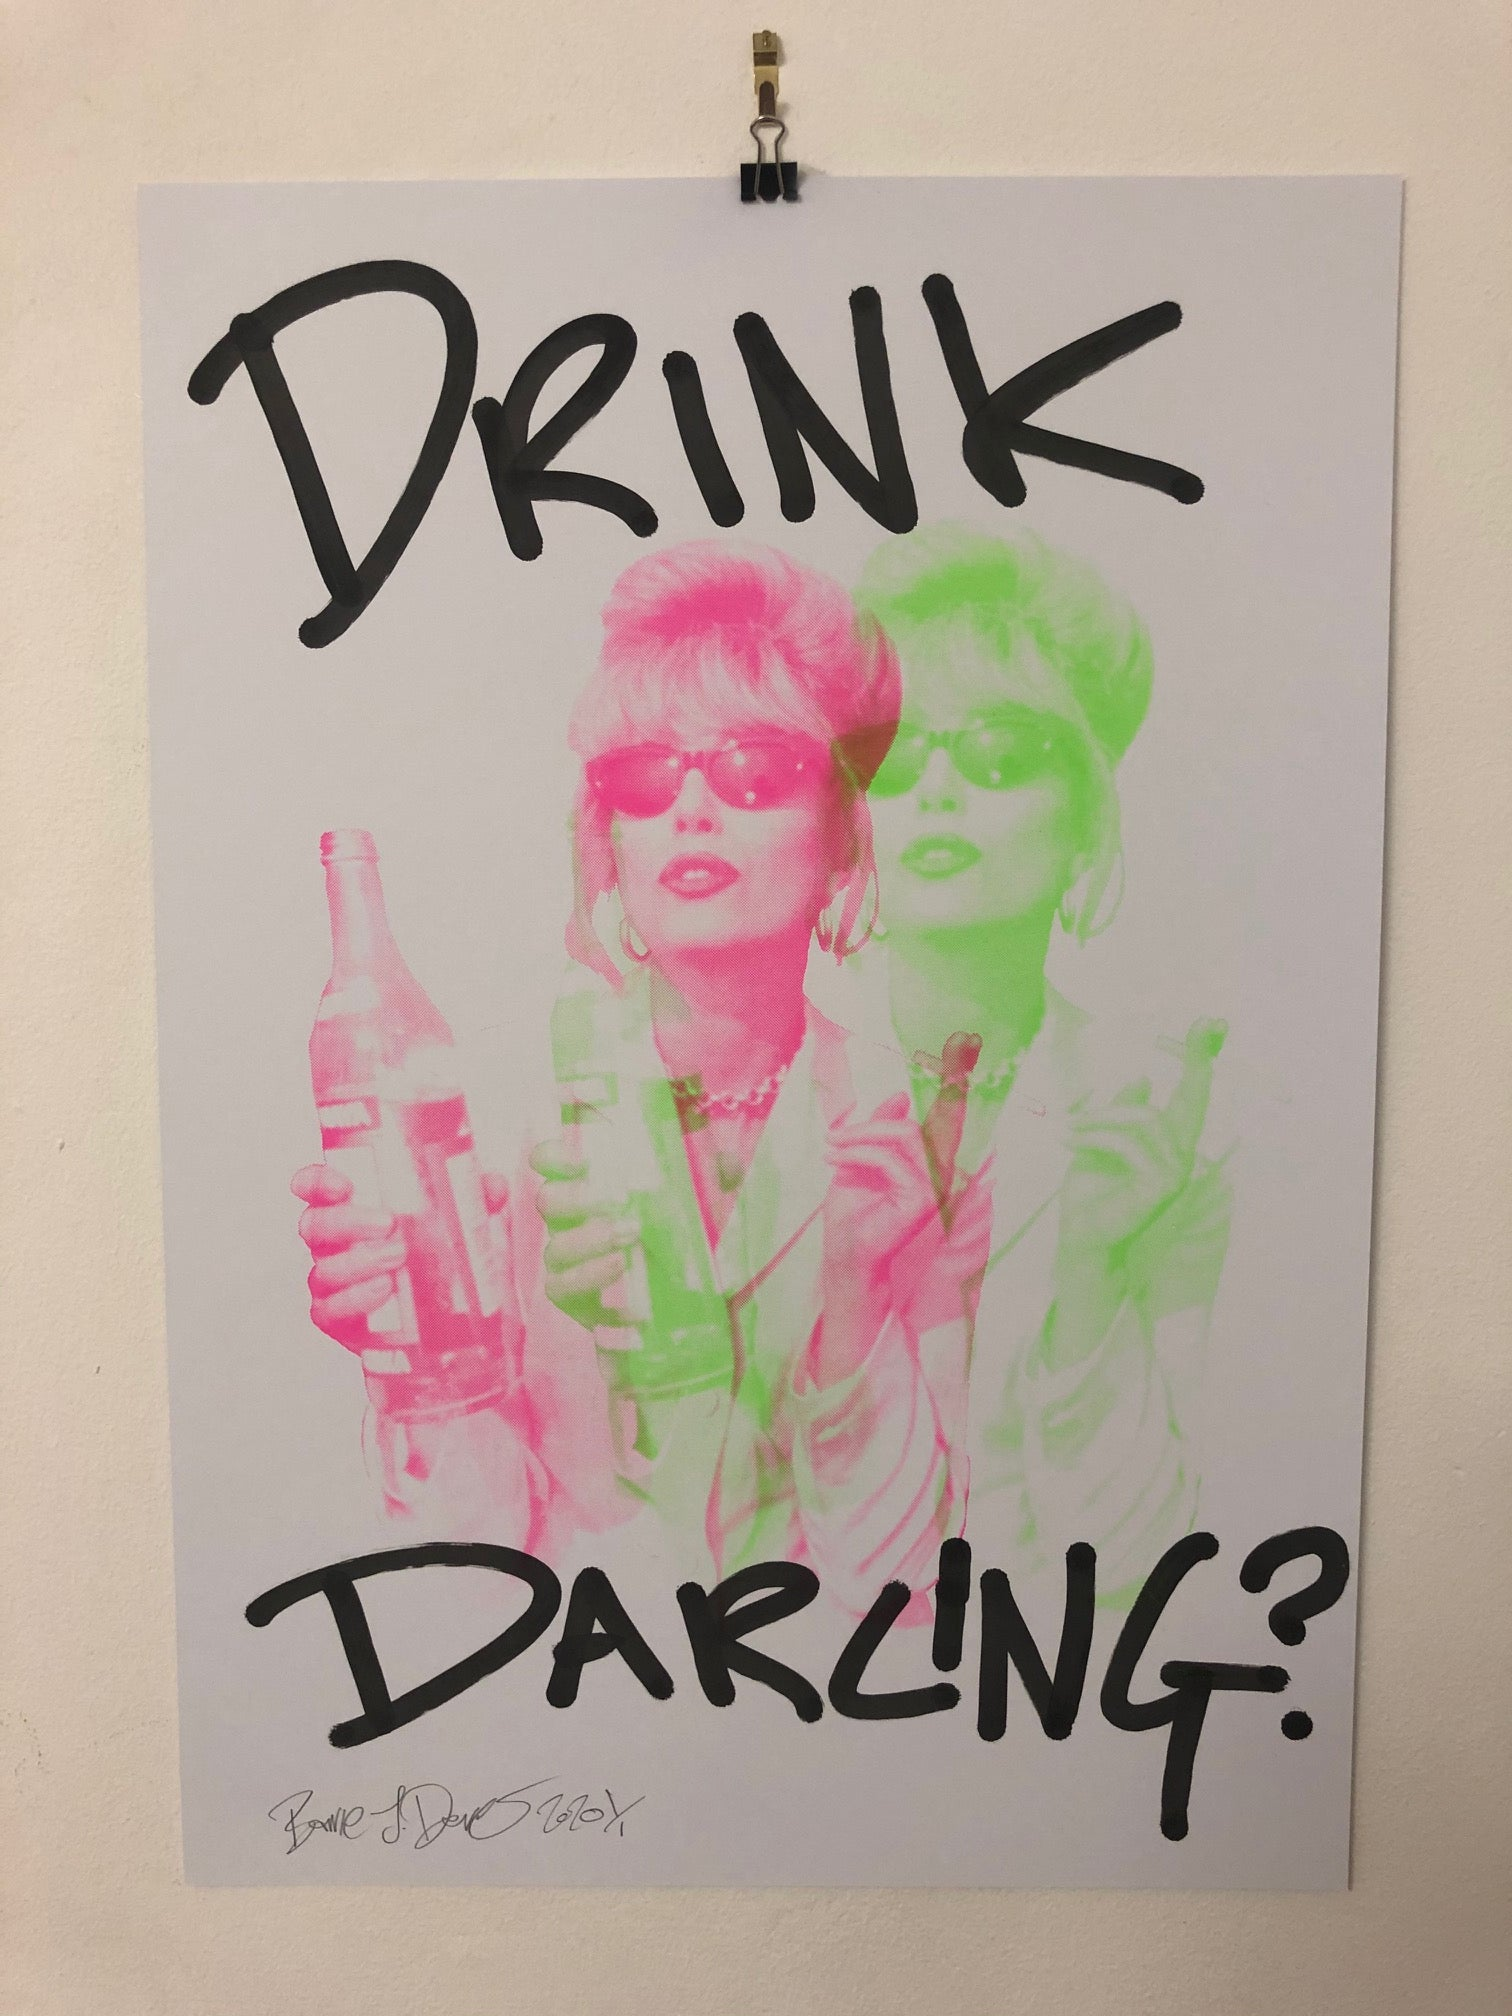 Drink Darling I Want It All Print by Barrie J Davies 2020 - unframed Silkscreen print on paper (hand finished with tagging marker pen) edition of 1/1 - A2 size 42cm x 59.4cm. Barrie J Davies is an Artist - Pop Art and Street art inspired Artist based in Brighton England UK - Paintings, Prints & Editions available.